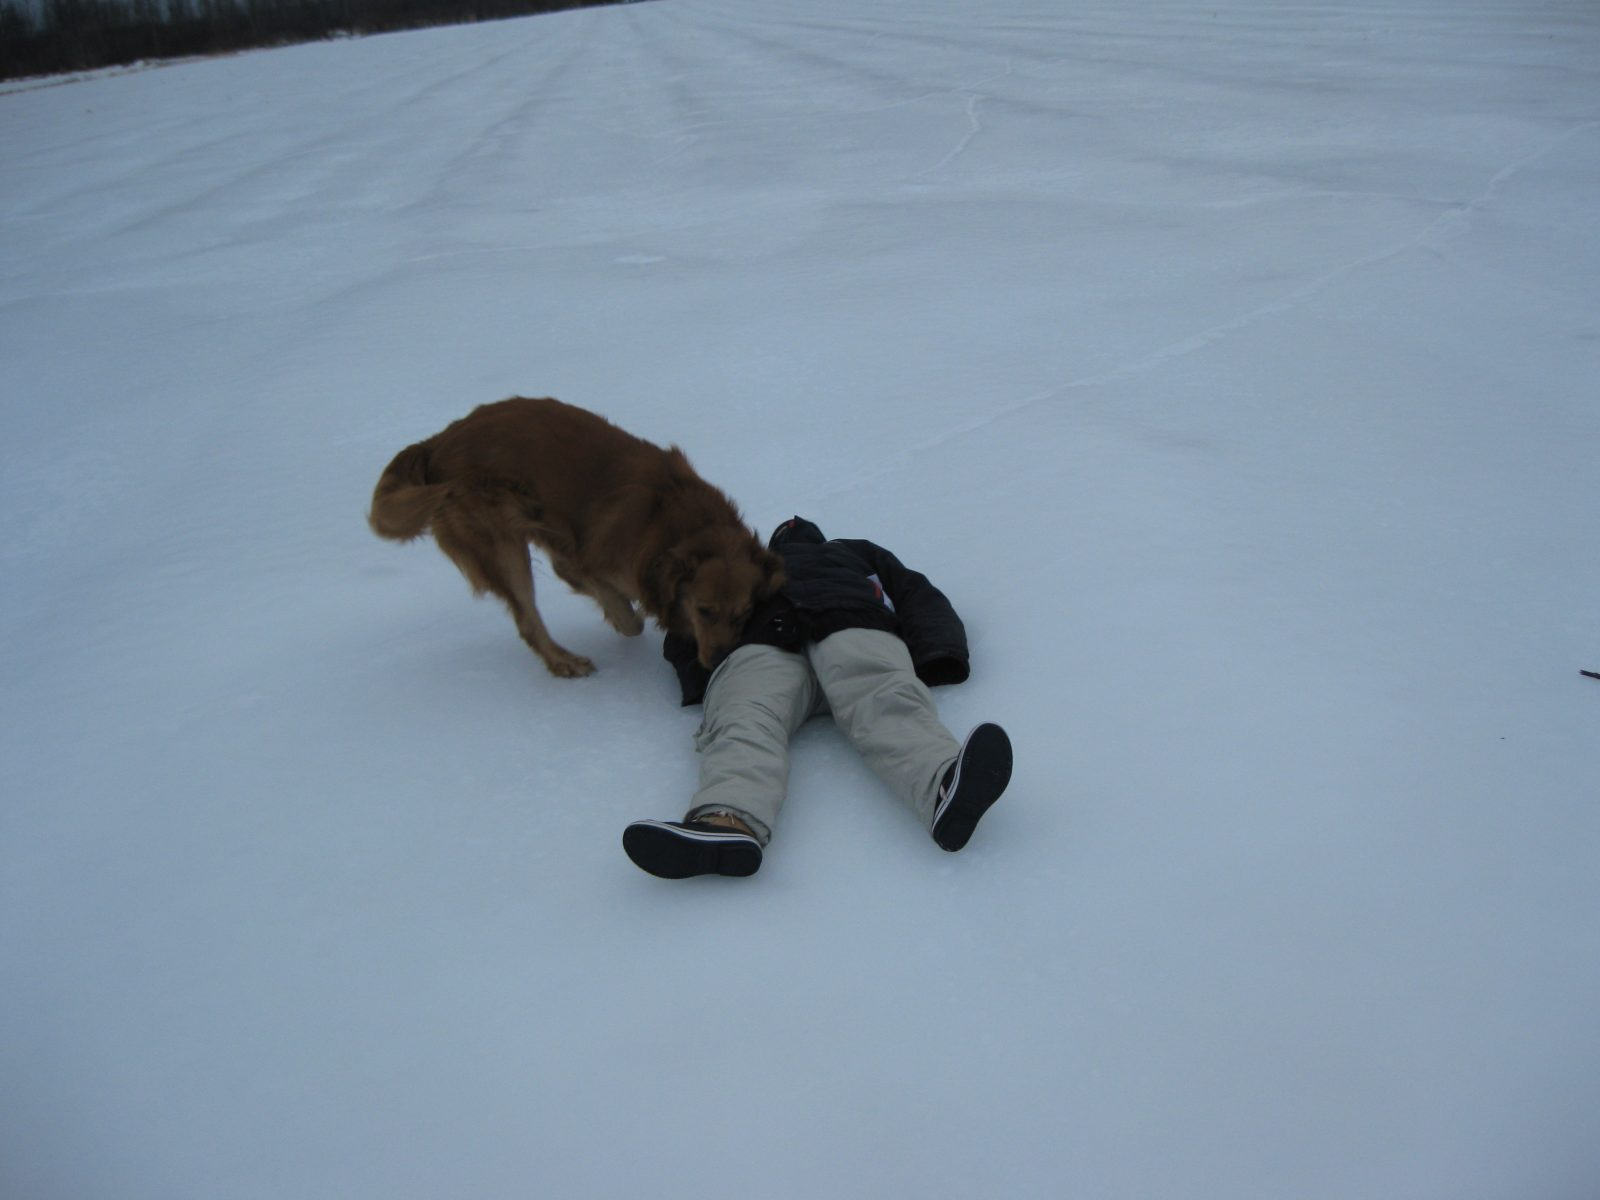 Ice is not safe. Here's woman down as rescue dog searches pockets for provisions.